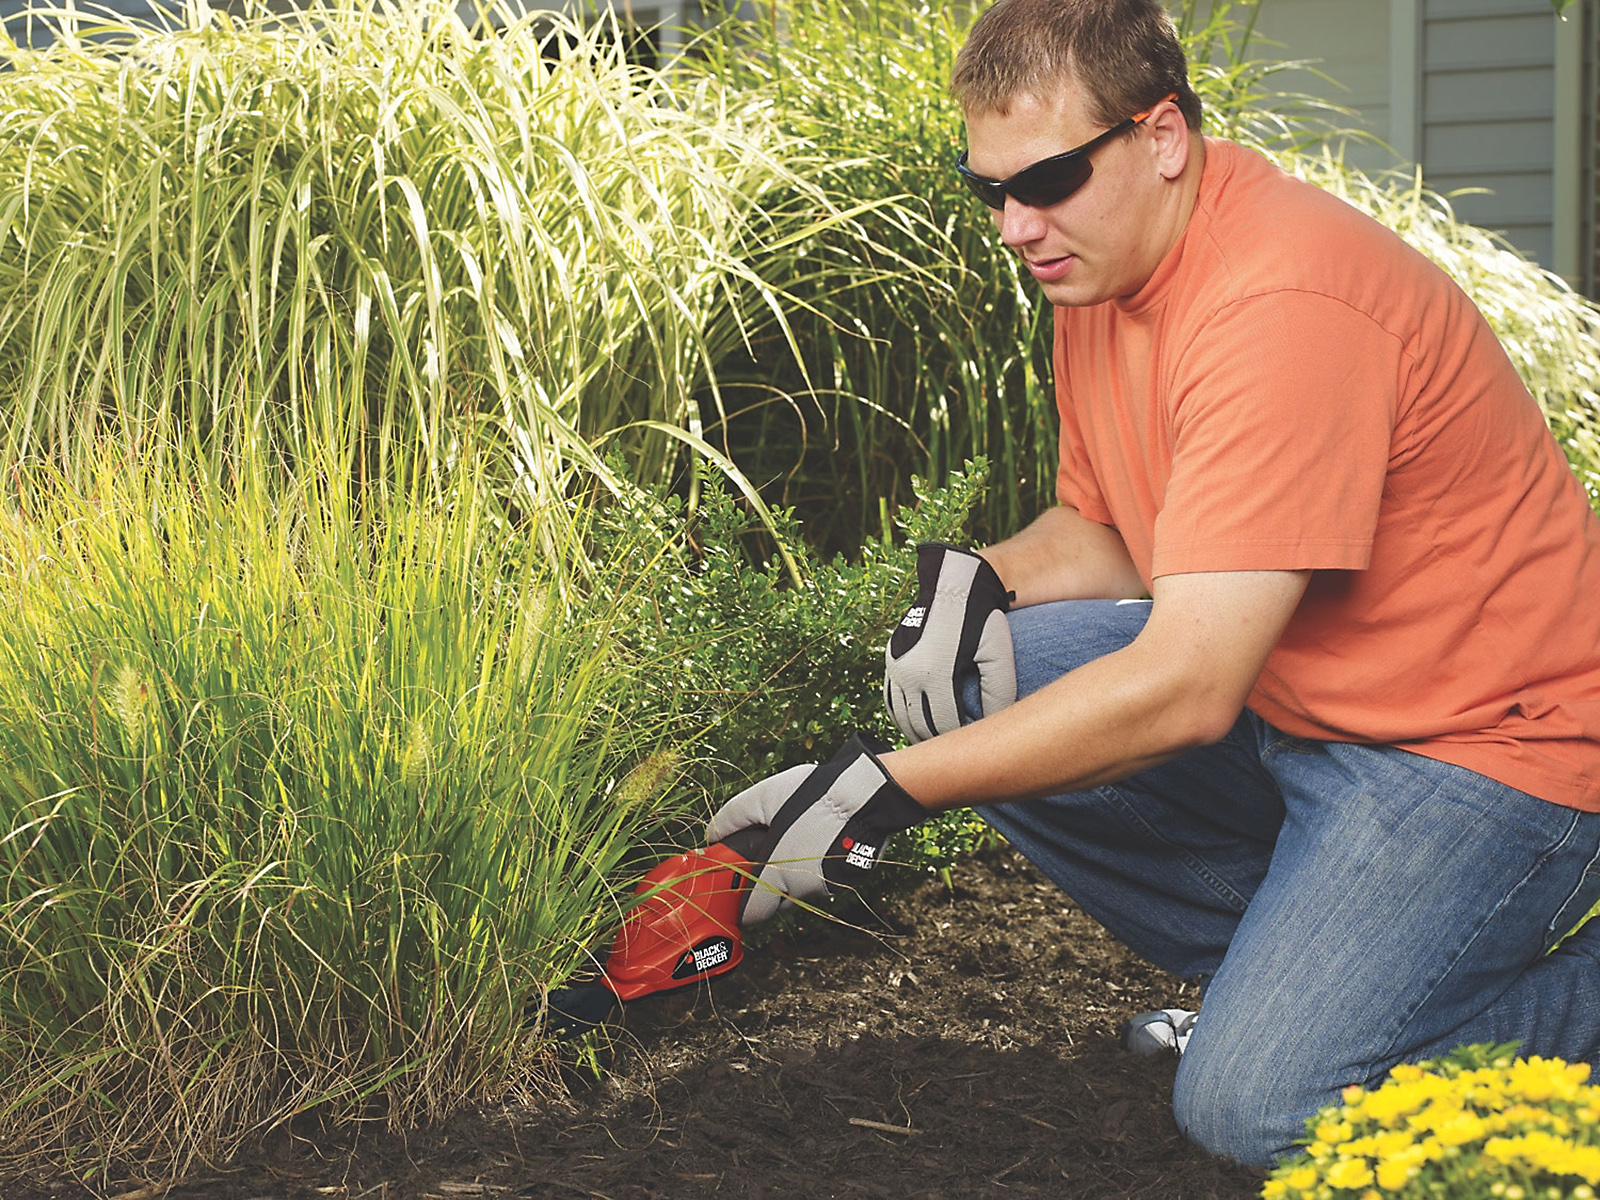 Black & Decker 3.6V Lithium Cordless Hedge Trimmer